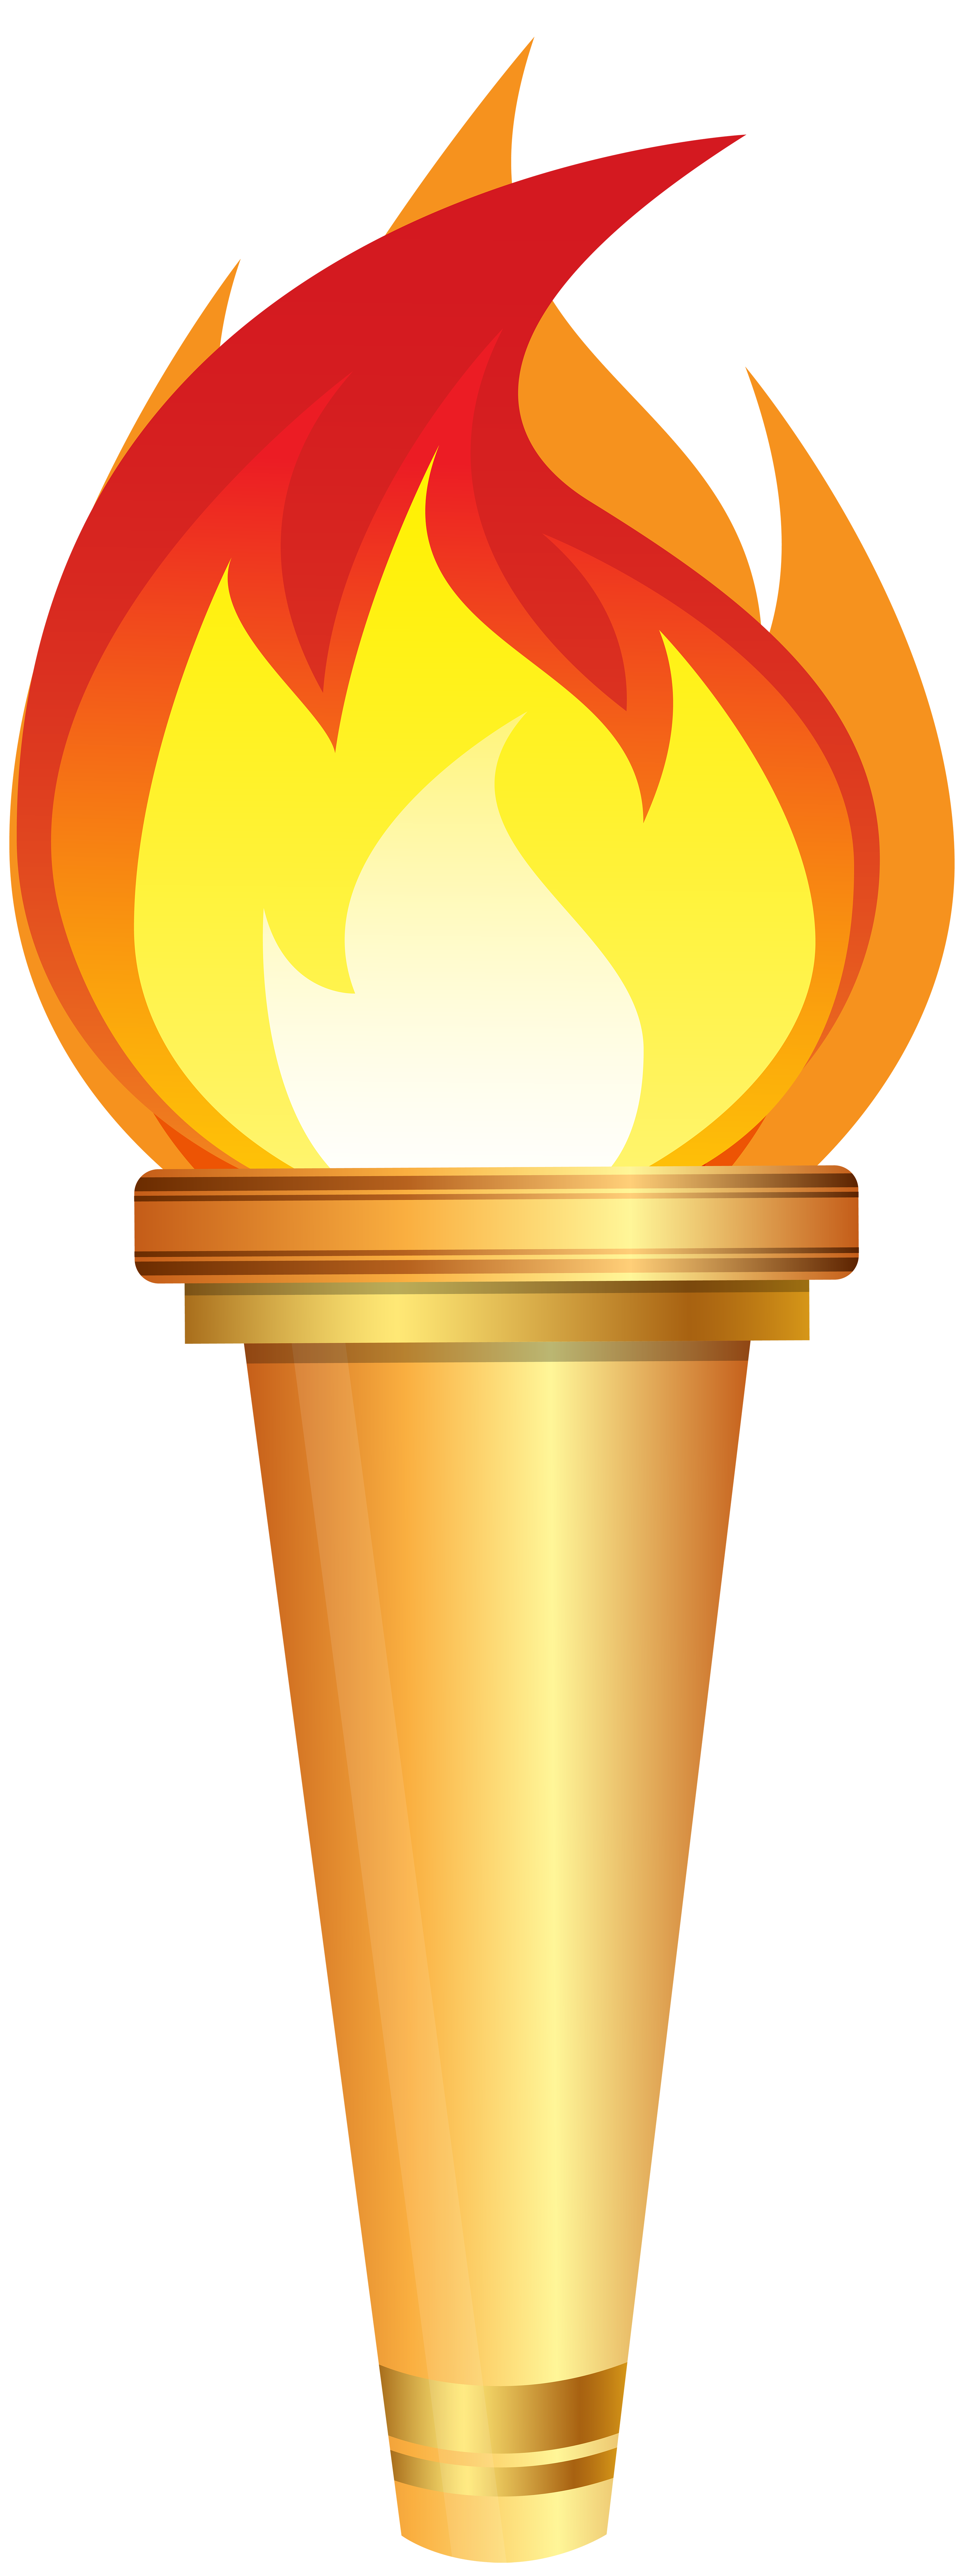 2995x8000 Flames Clipart, Suggestions For Flames Clipart, Download Flames